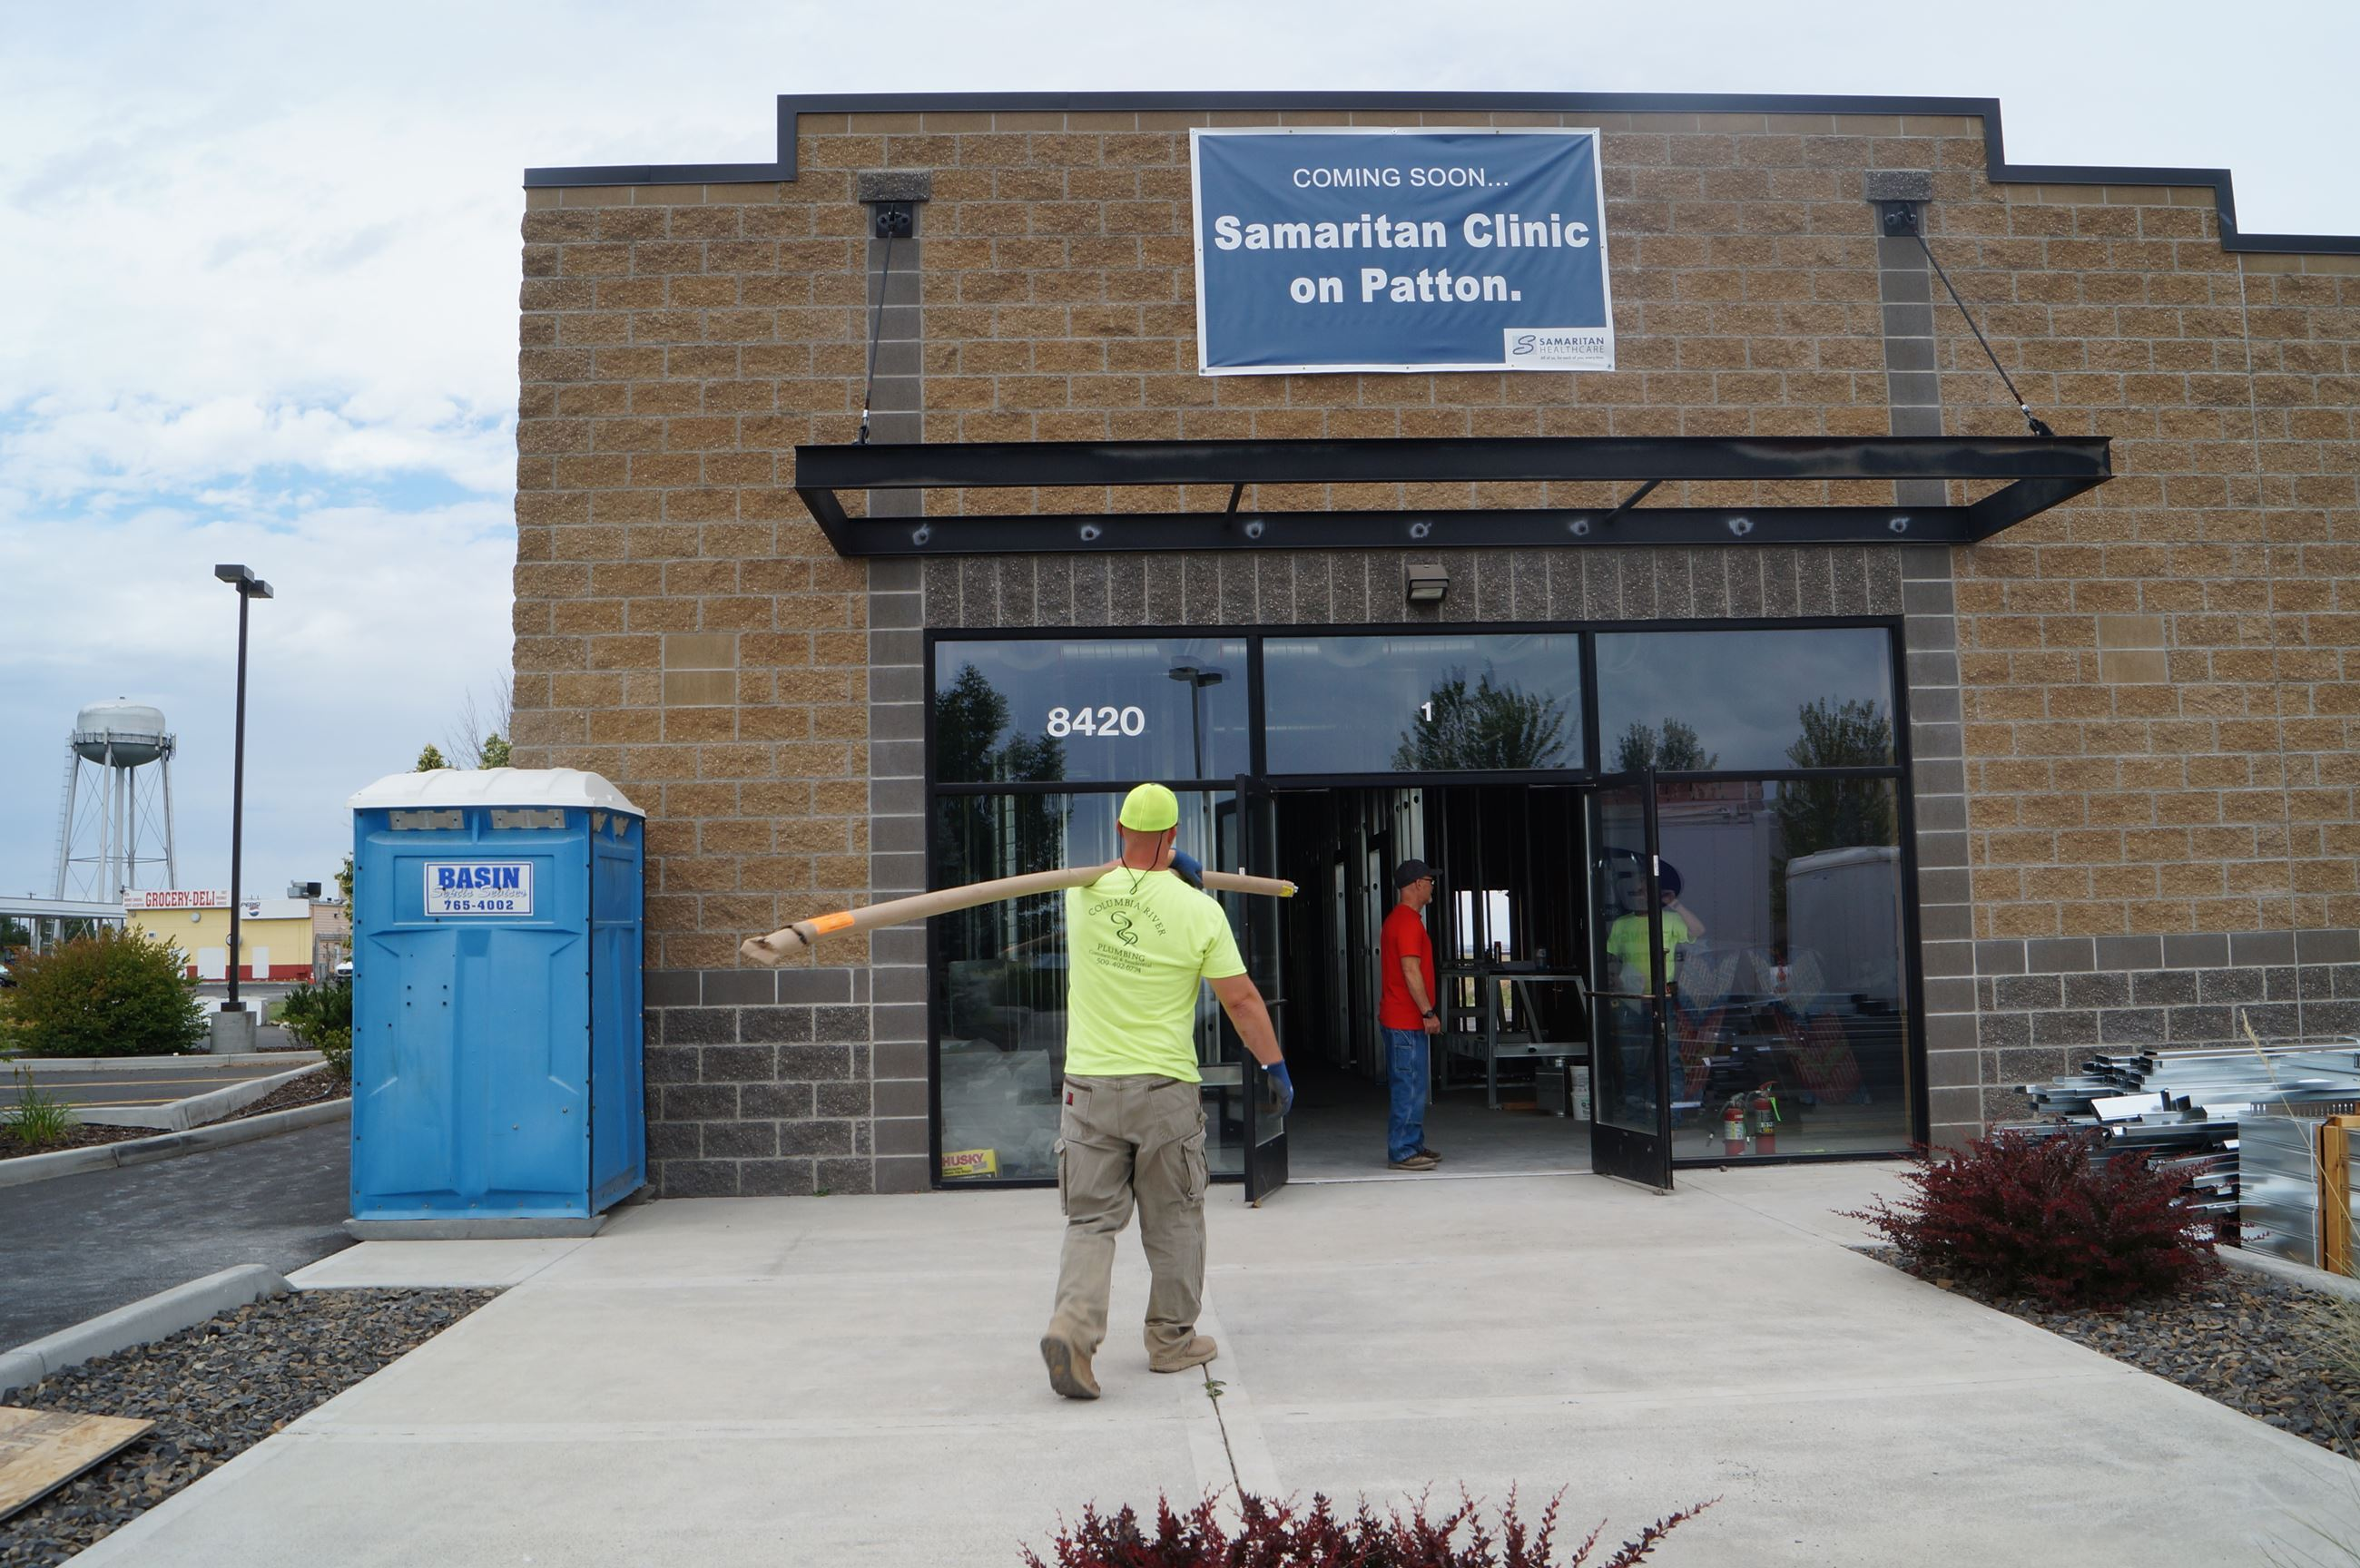 A worker carries material inside Samaritan's Clinic on Patton in Moses Lake.